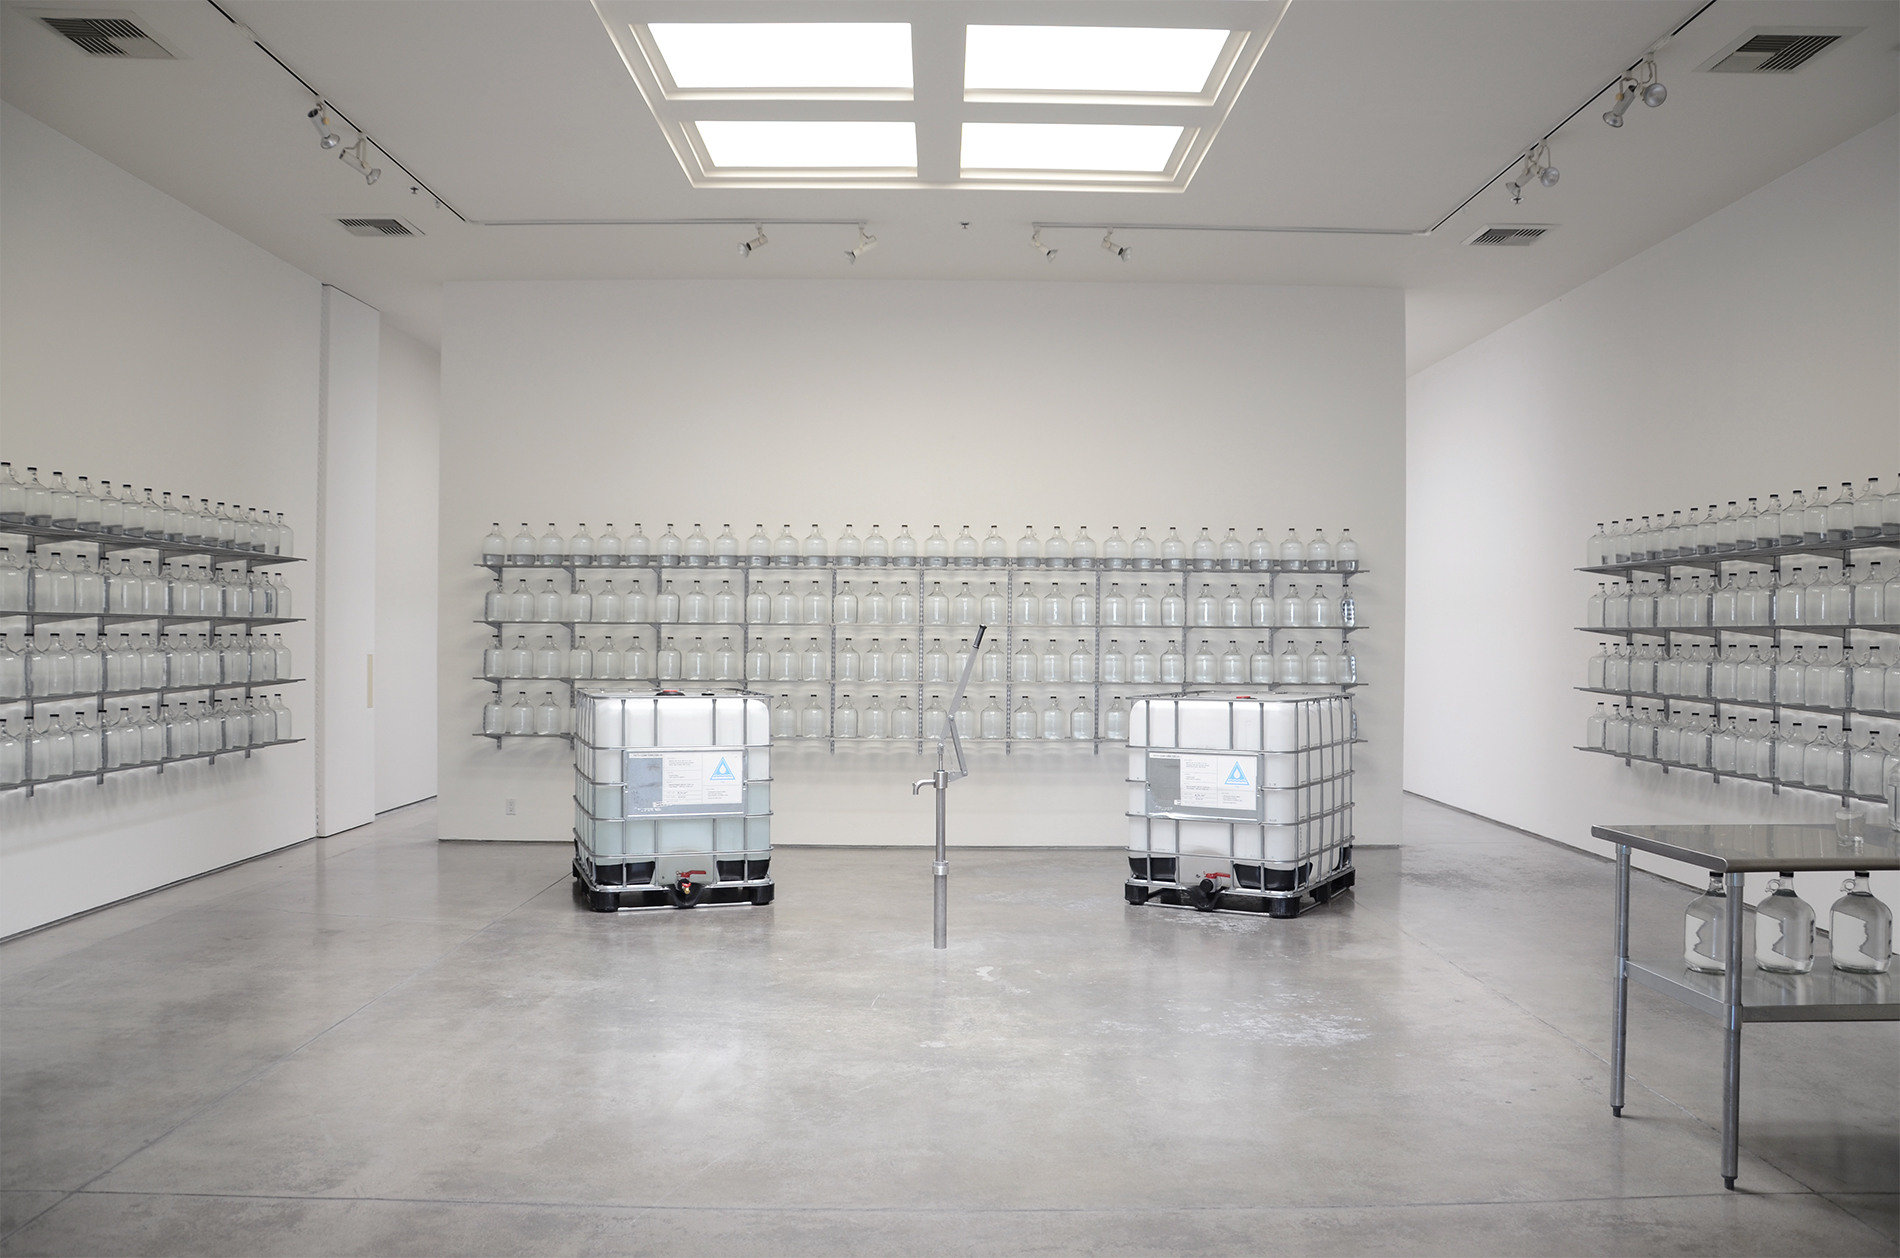 "Iñigo Manglano-Ovalle, Well 34°01'03""N - 118°29'12""W, 2015, 500 gallons of water from Santa Clara Pueblo, glass bottles, shelves and pump, dimensions variable"